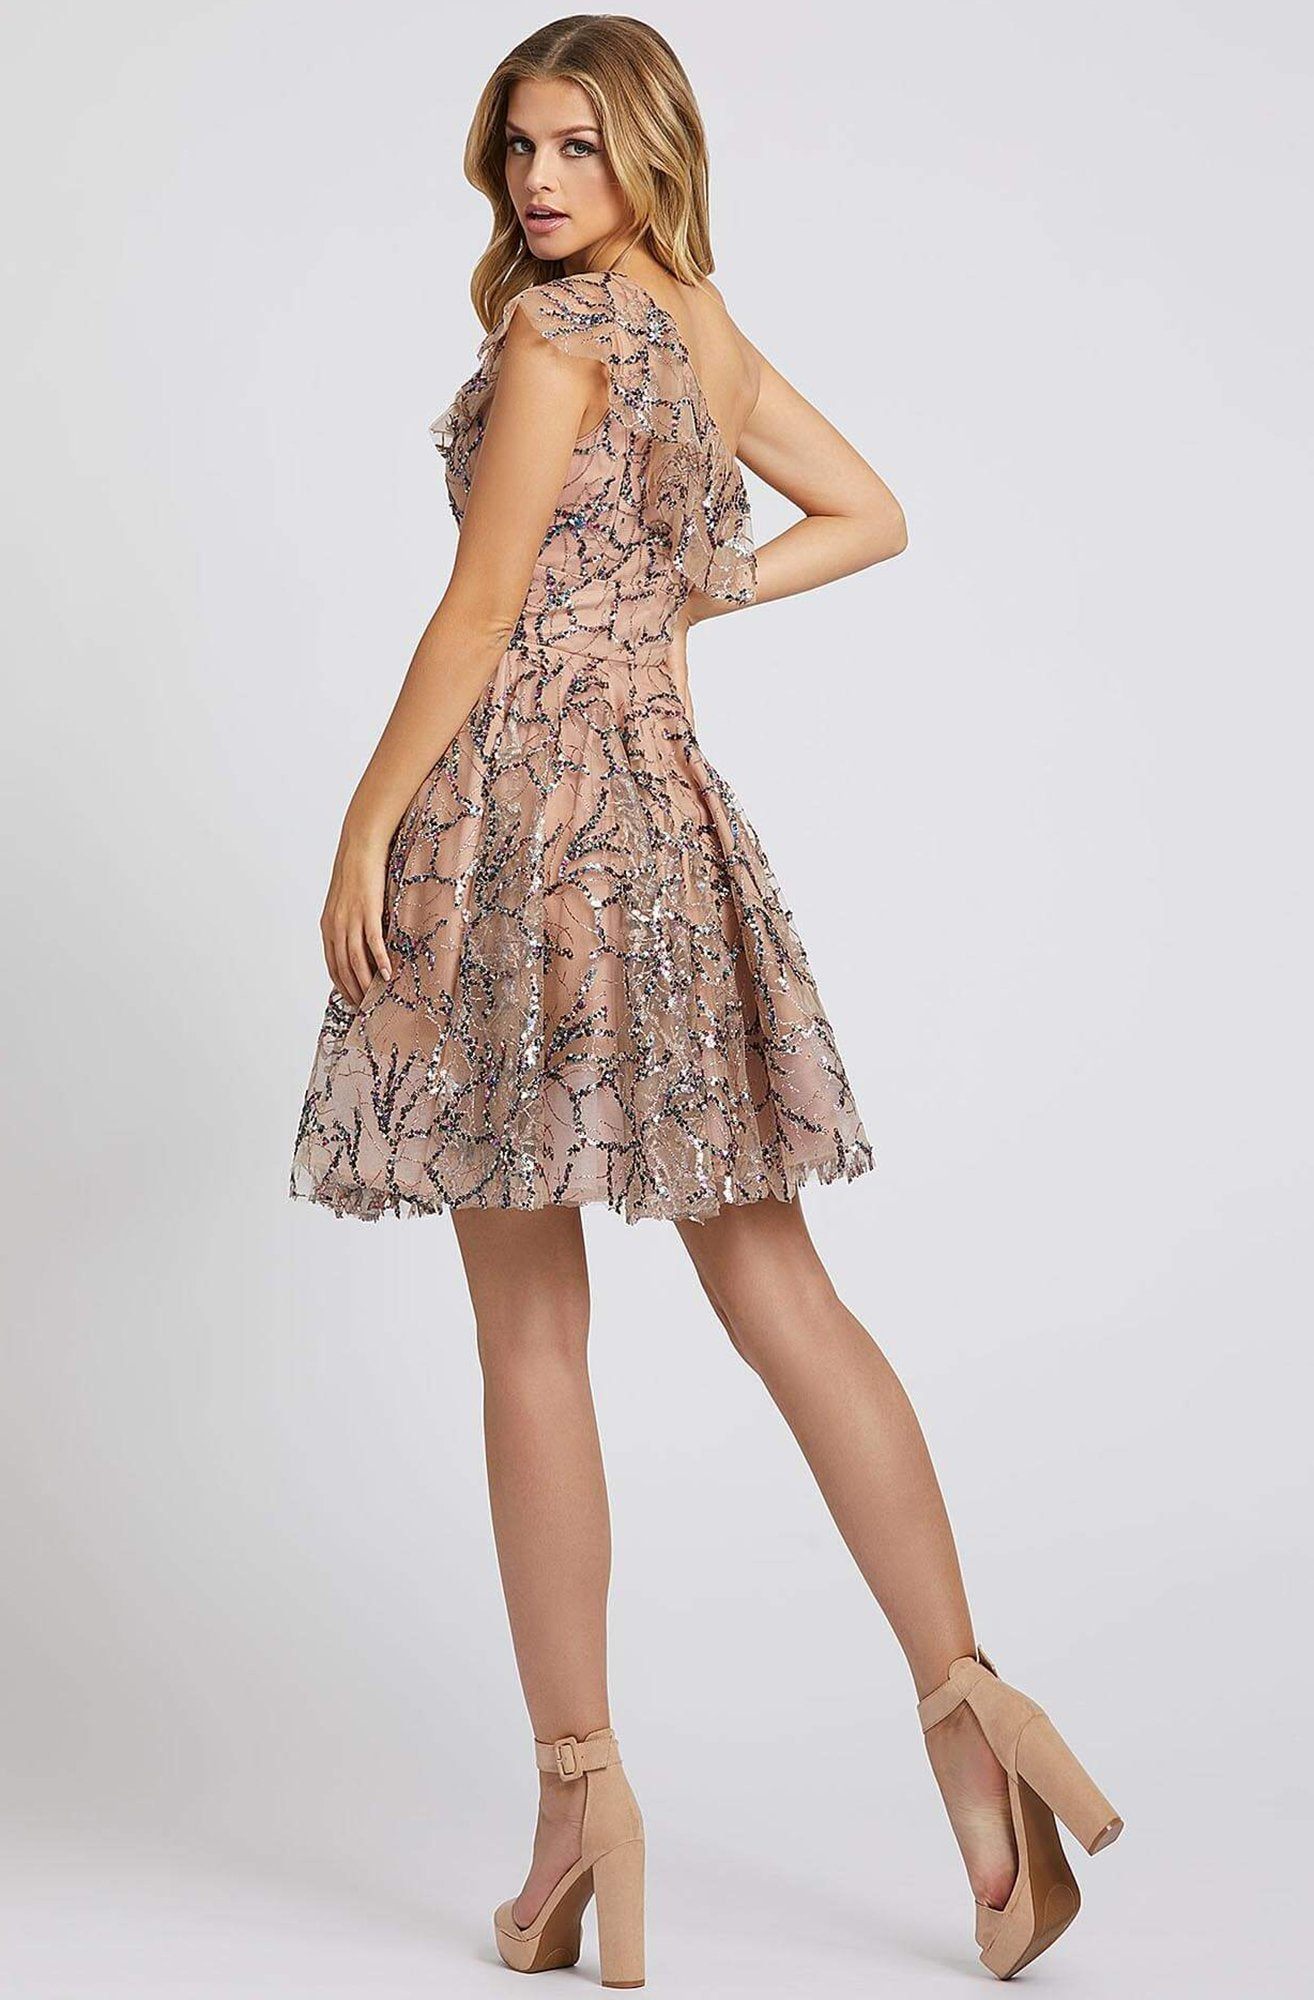 Ieena Duggal - 26336I Flounced Asymmetrical Bodice Sequined Dress In Neutral and Multi-Color